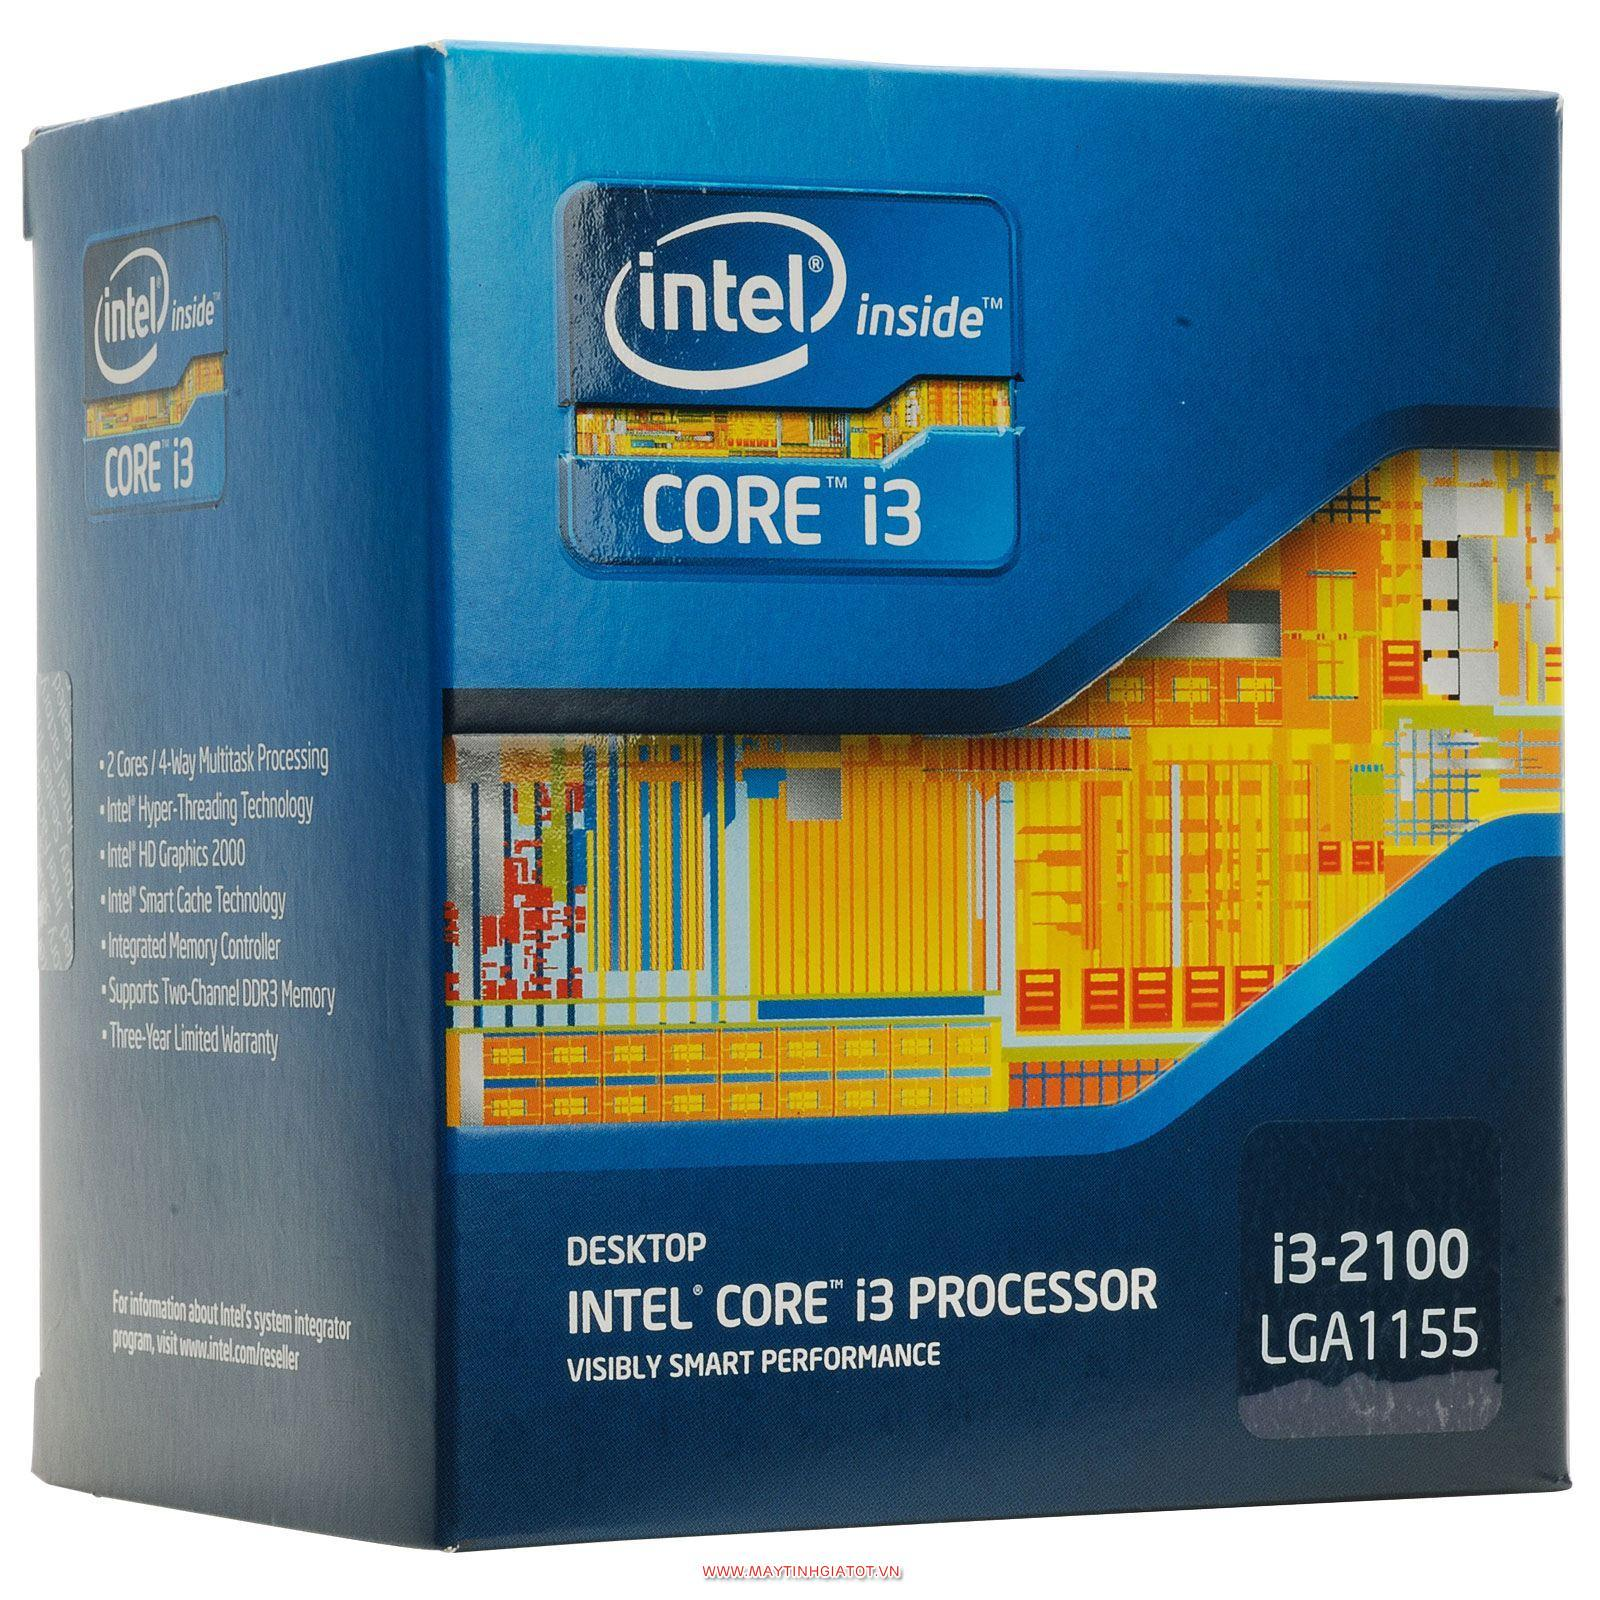 CPU INTEL CORE I3 2100 CŨ ( 3.1GHZ / 3M CACHE / 2 CORES - 4 THREADS )